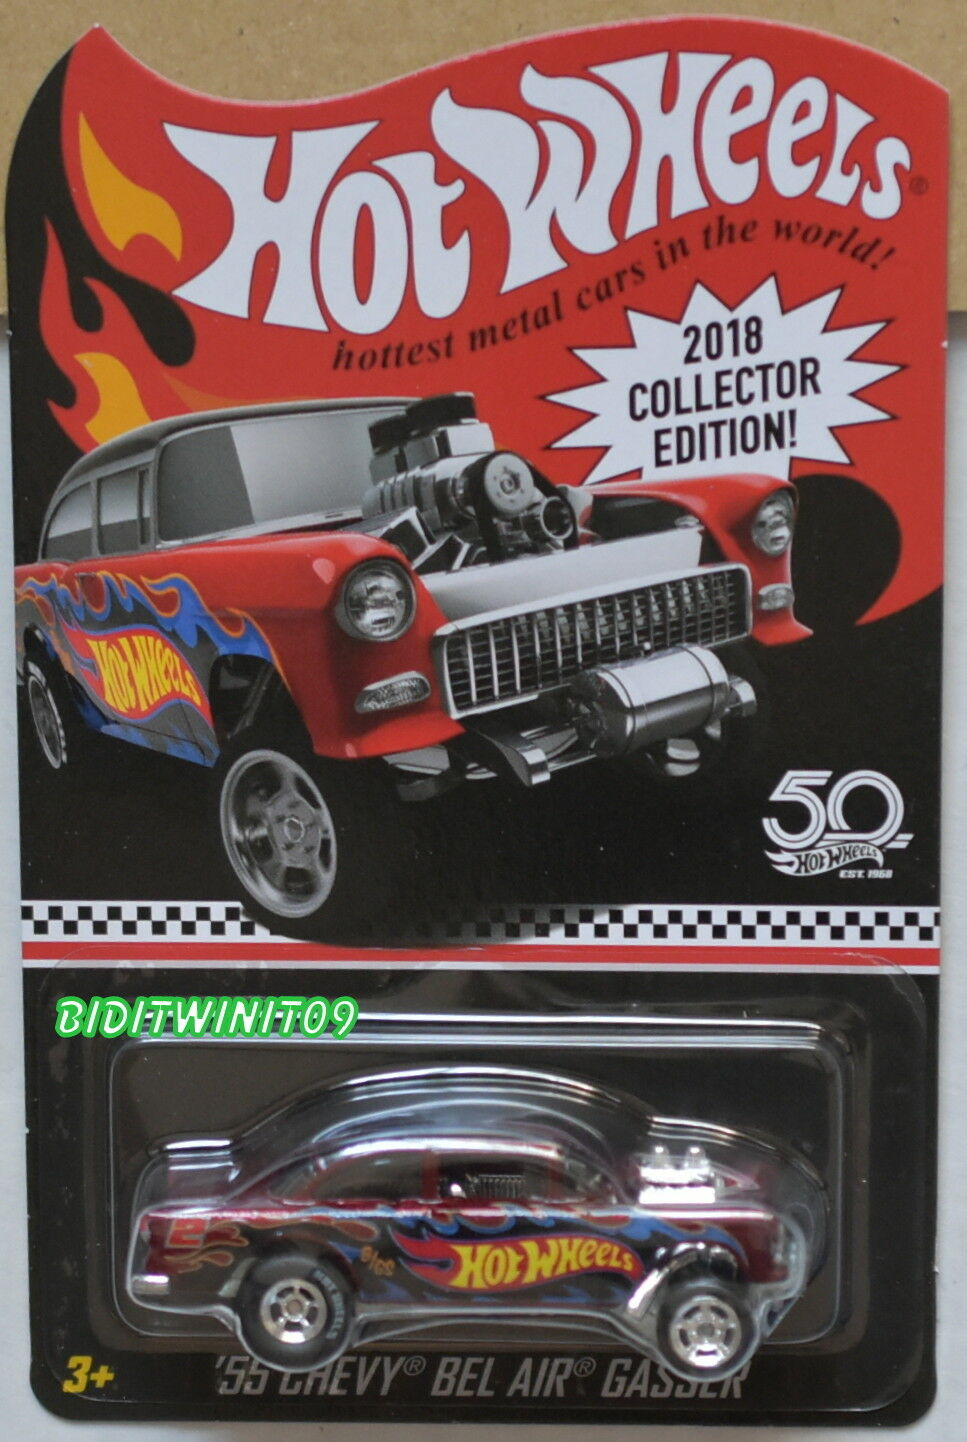 HOT WHEELS 2018 COLLECTOR EDITION '55 CHEVY BEL AIR GASSER KMART MAIL